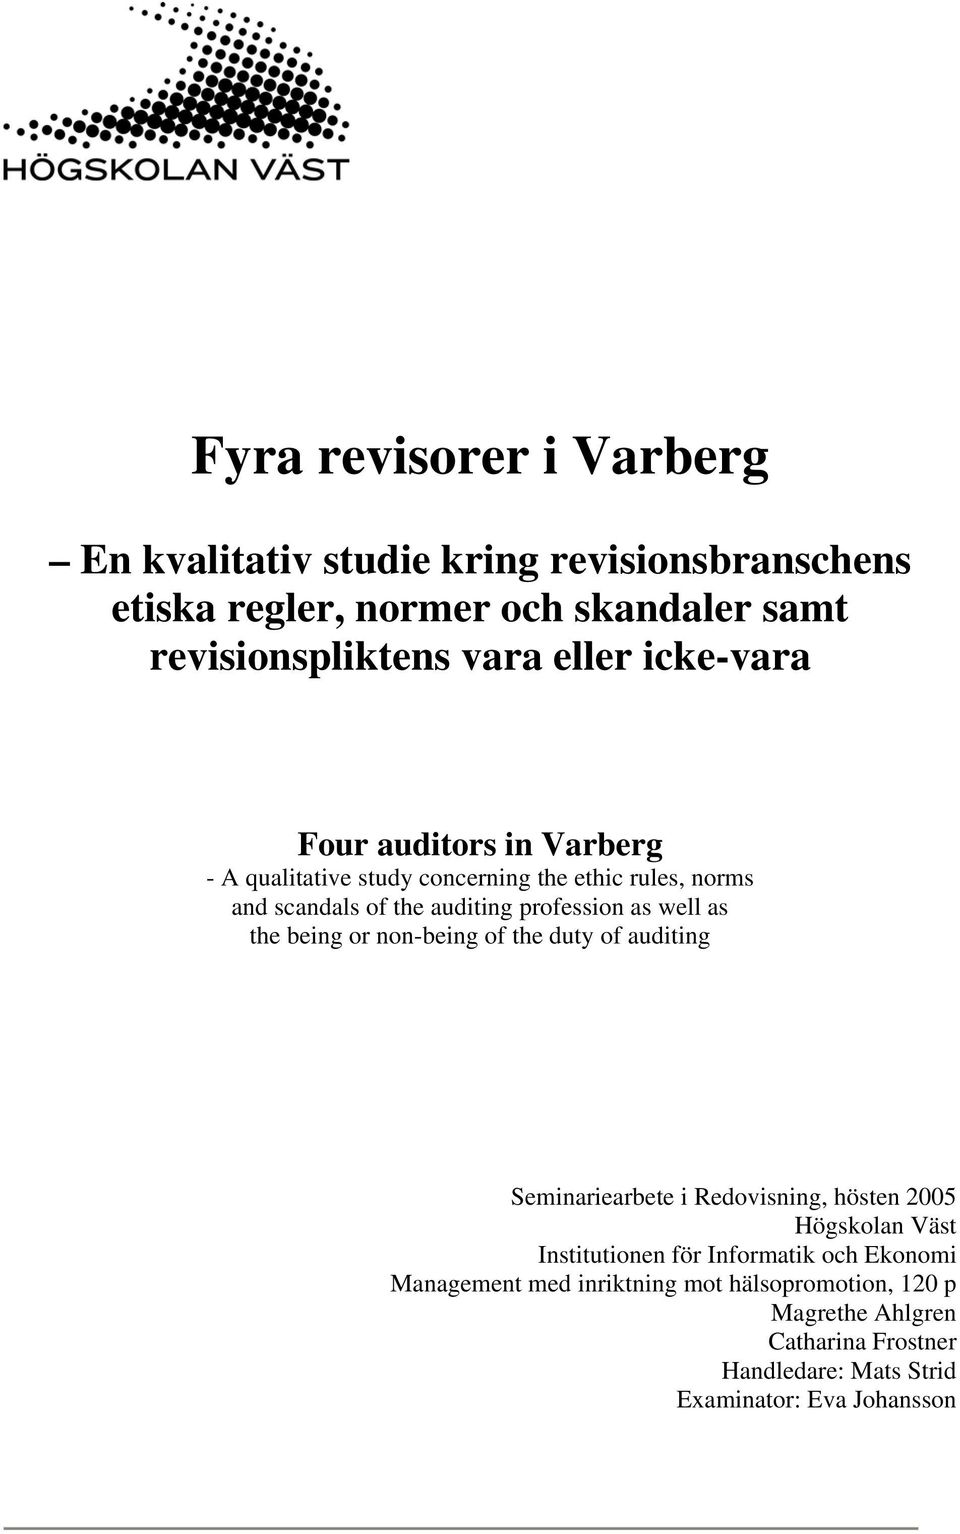 the being or non-being of the duty of auditing Seminariearbete i Redovisning, hösten 2005 Högskolan Väst Institutionen för Informatik och